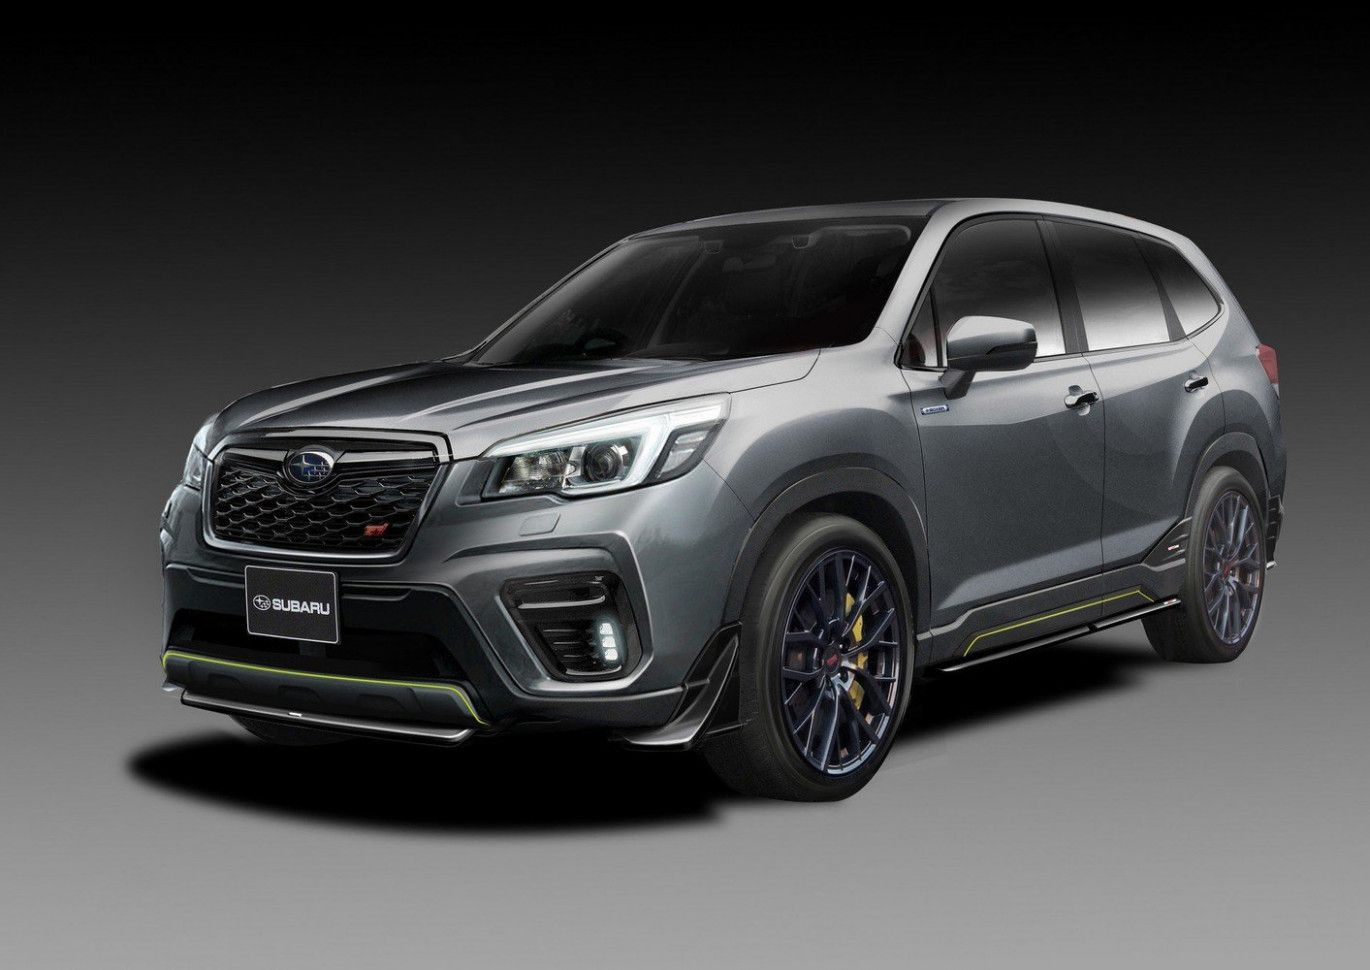 New Generation 2020 Subaru Forester Review And Release Date In 2020 Subaru Forester Sti Subaru Suv Subaru Forester